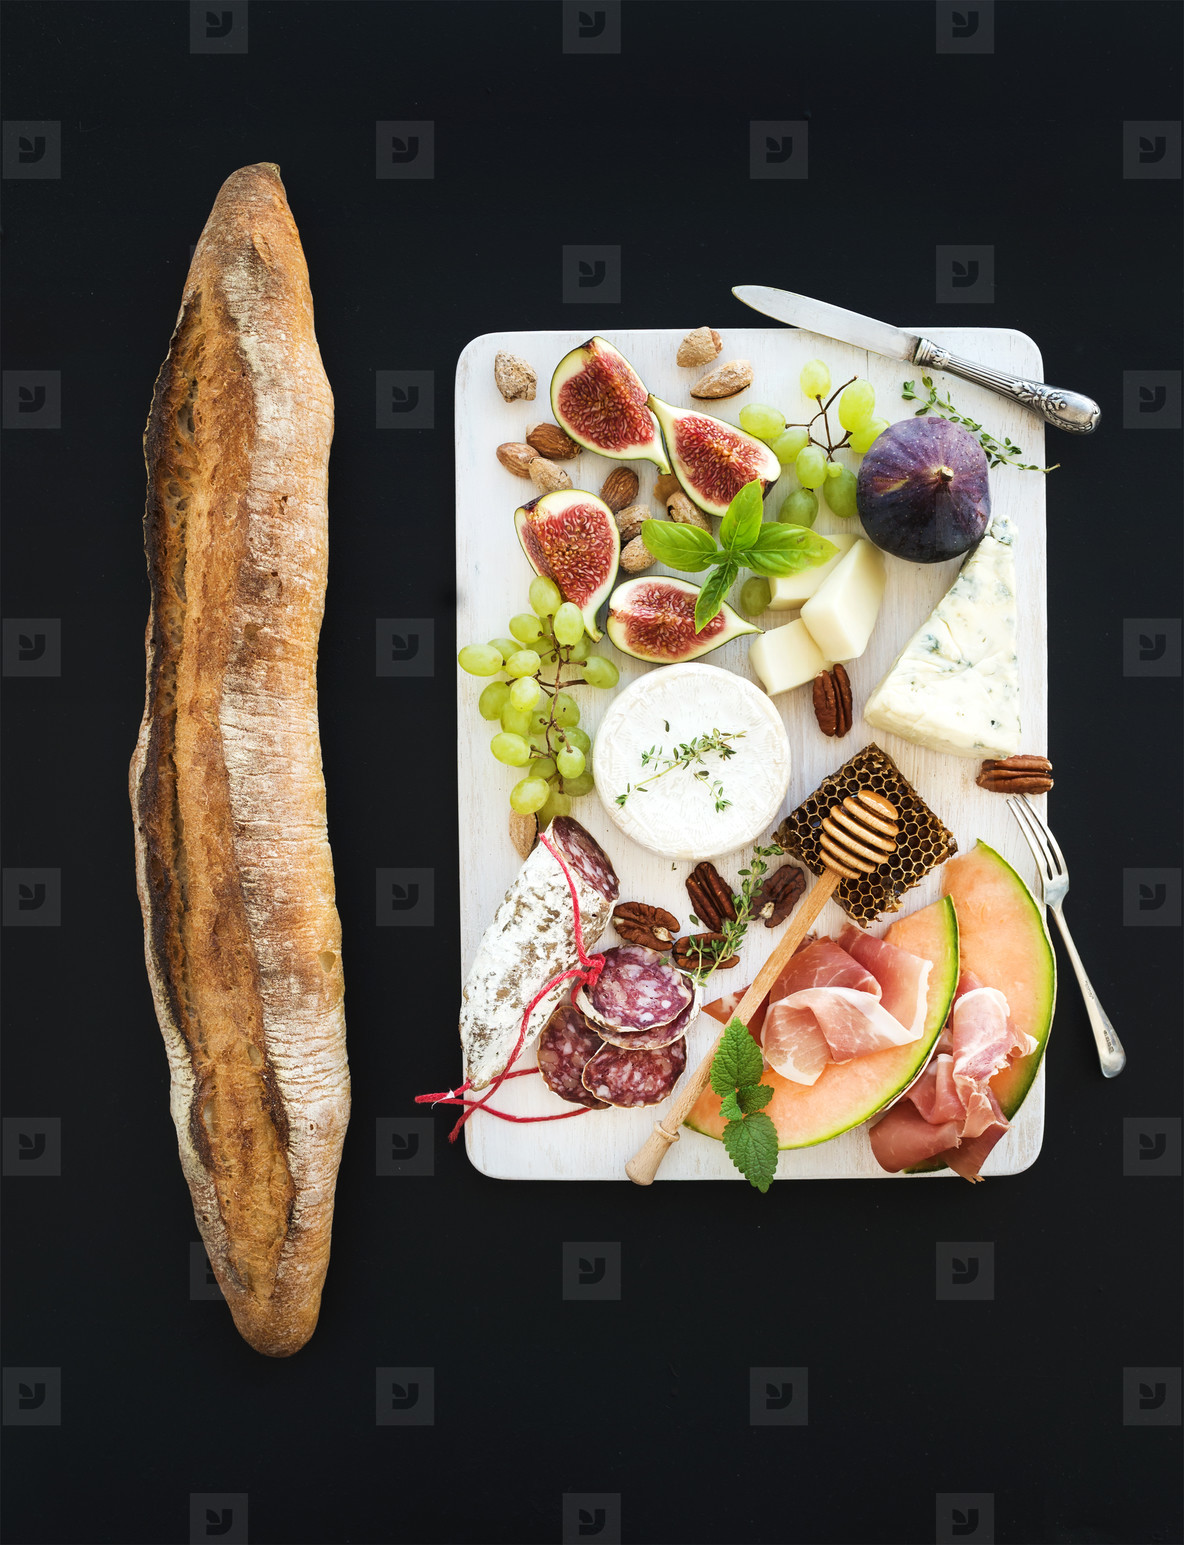 Wine and snack set  Baguette  figs  grapes  nuts  cheese variety  meat appetizers  herbs on white wooden board over black grunge background  top view